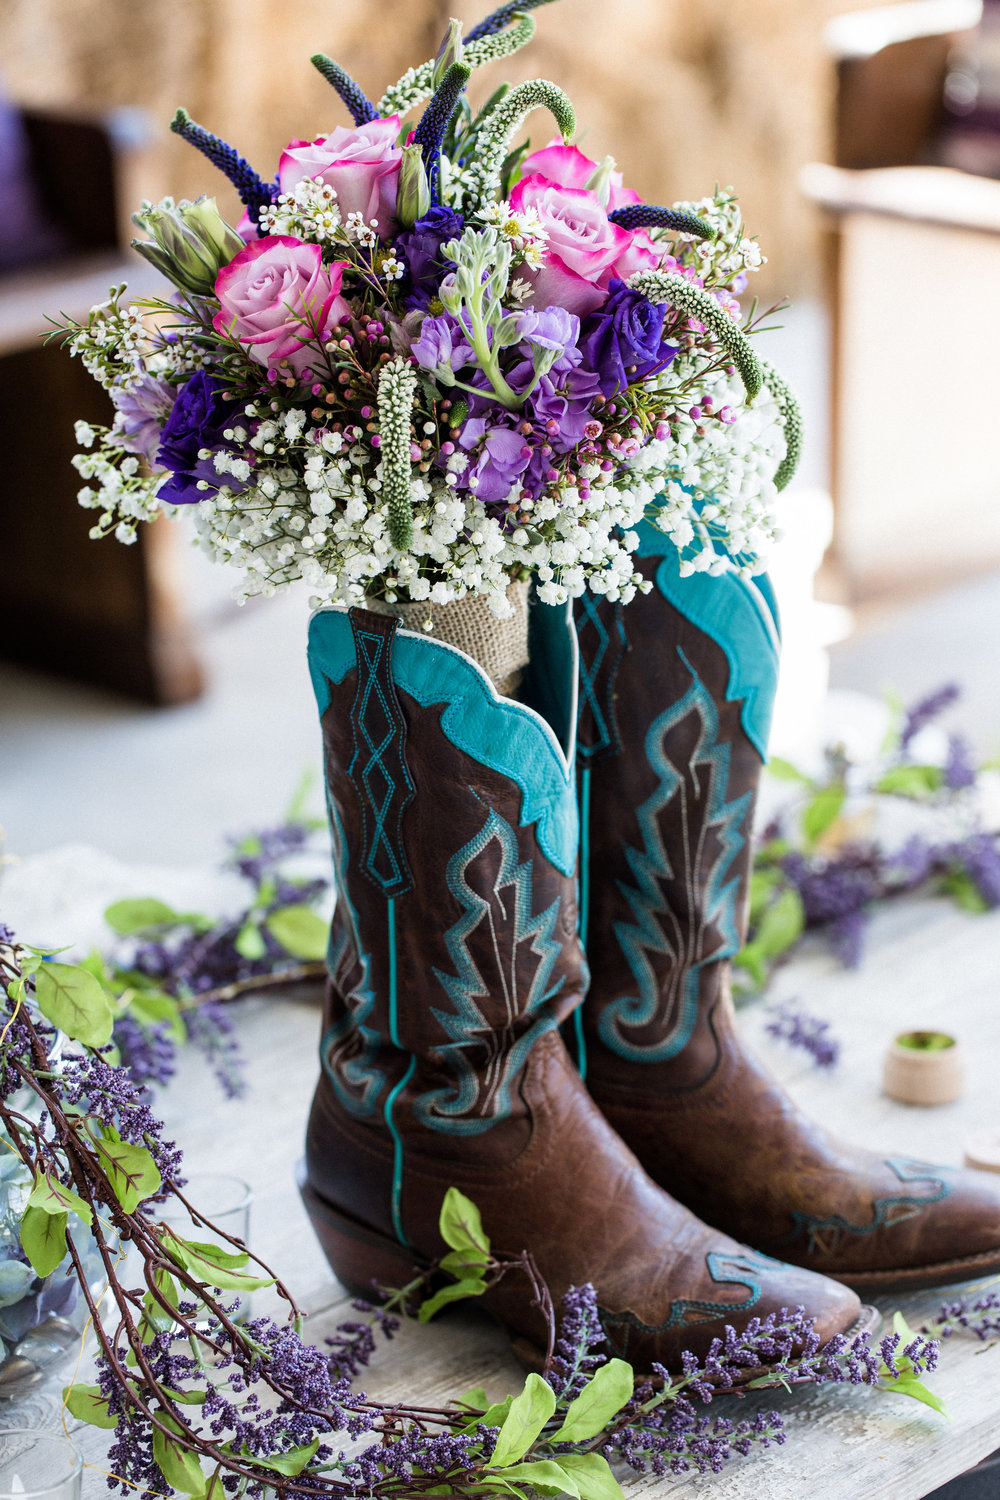 Teal Cowboy Boot Wedding Shoes.jpg